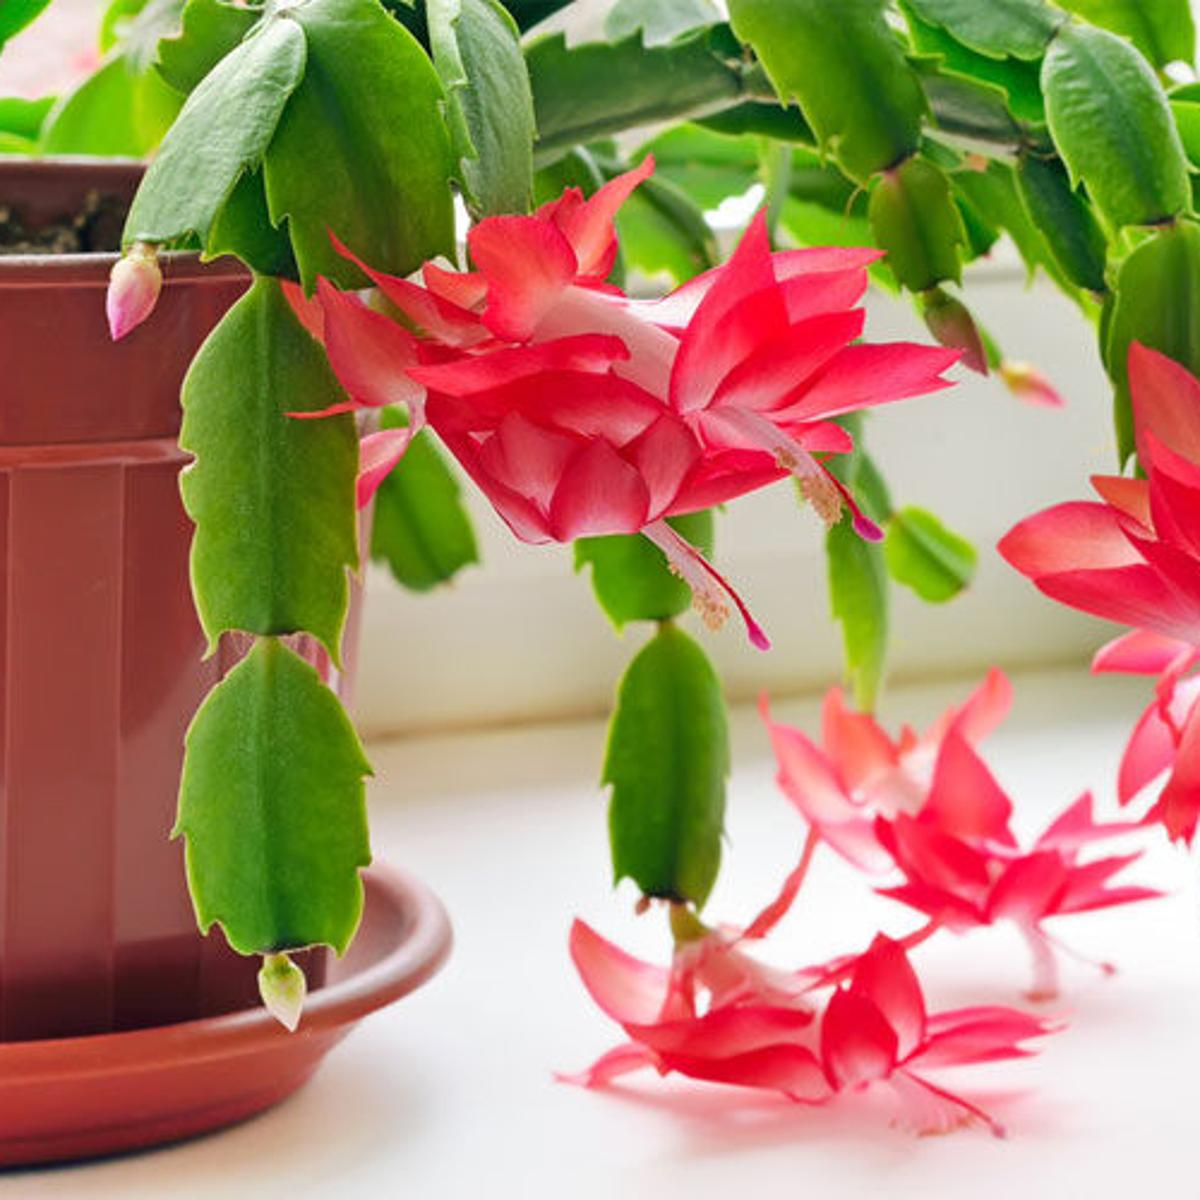 How To Care For Christmas Cactus.Care For Your Christmas Cactus Home Garden Daily